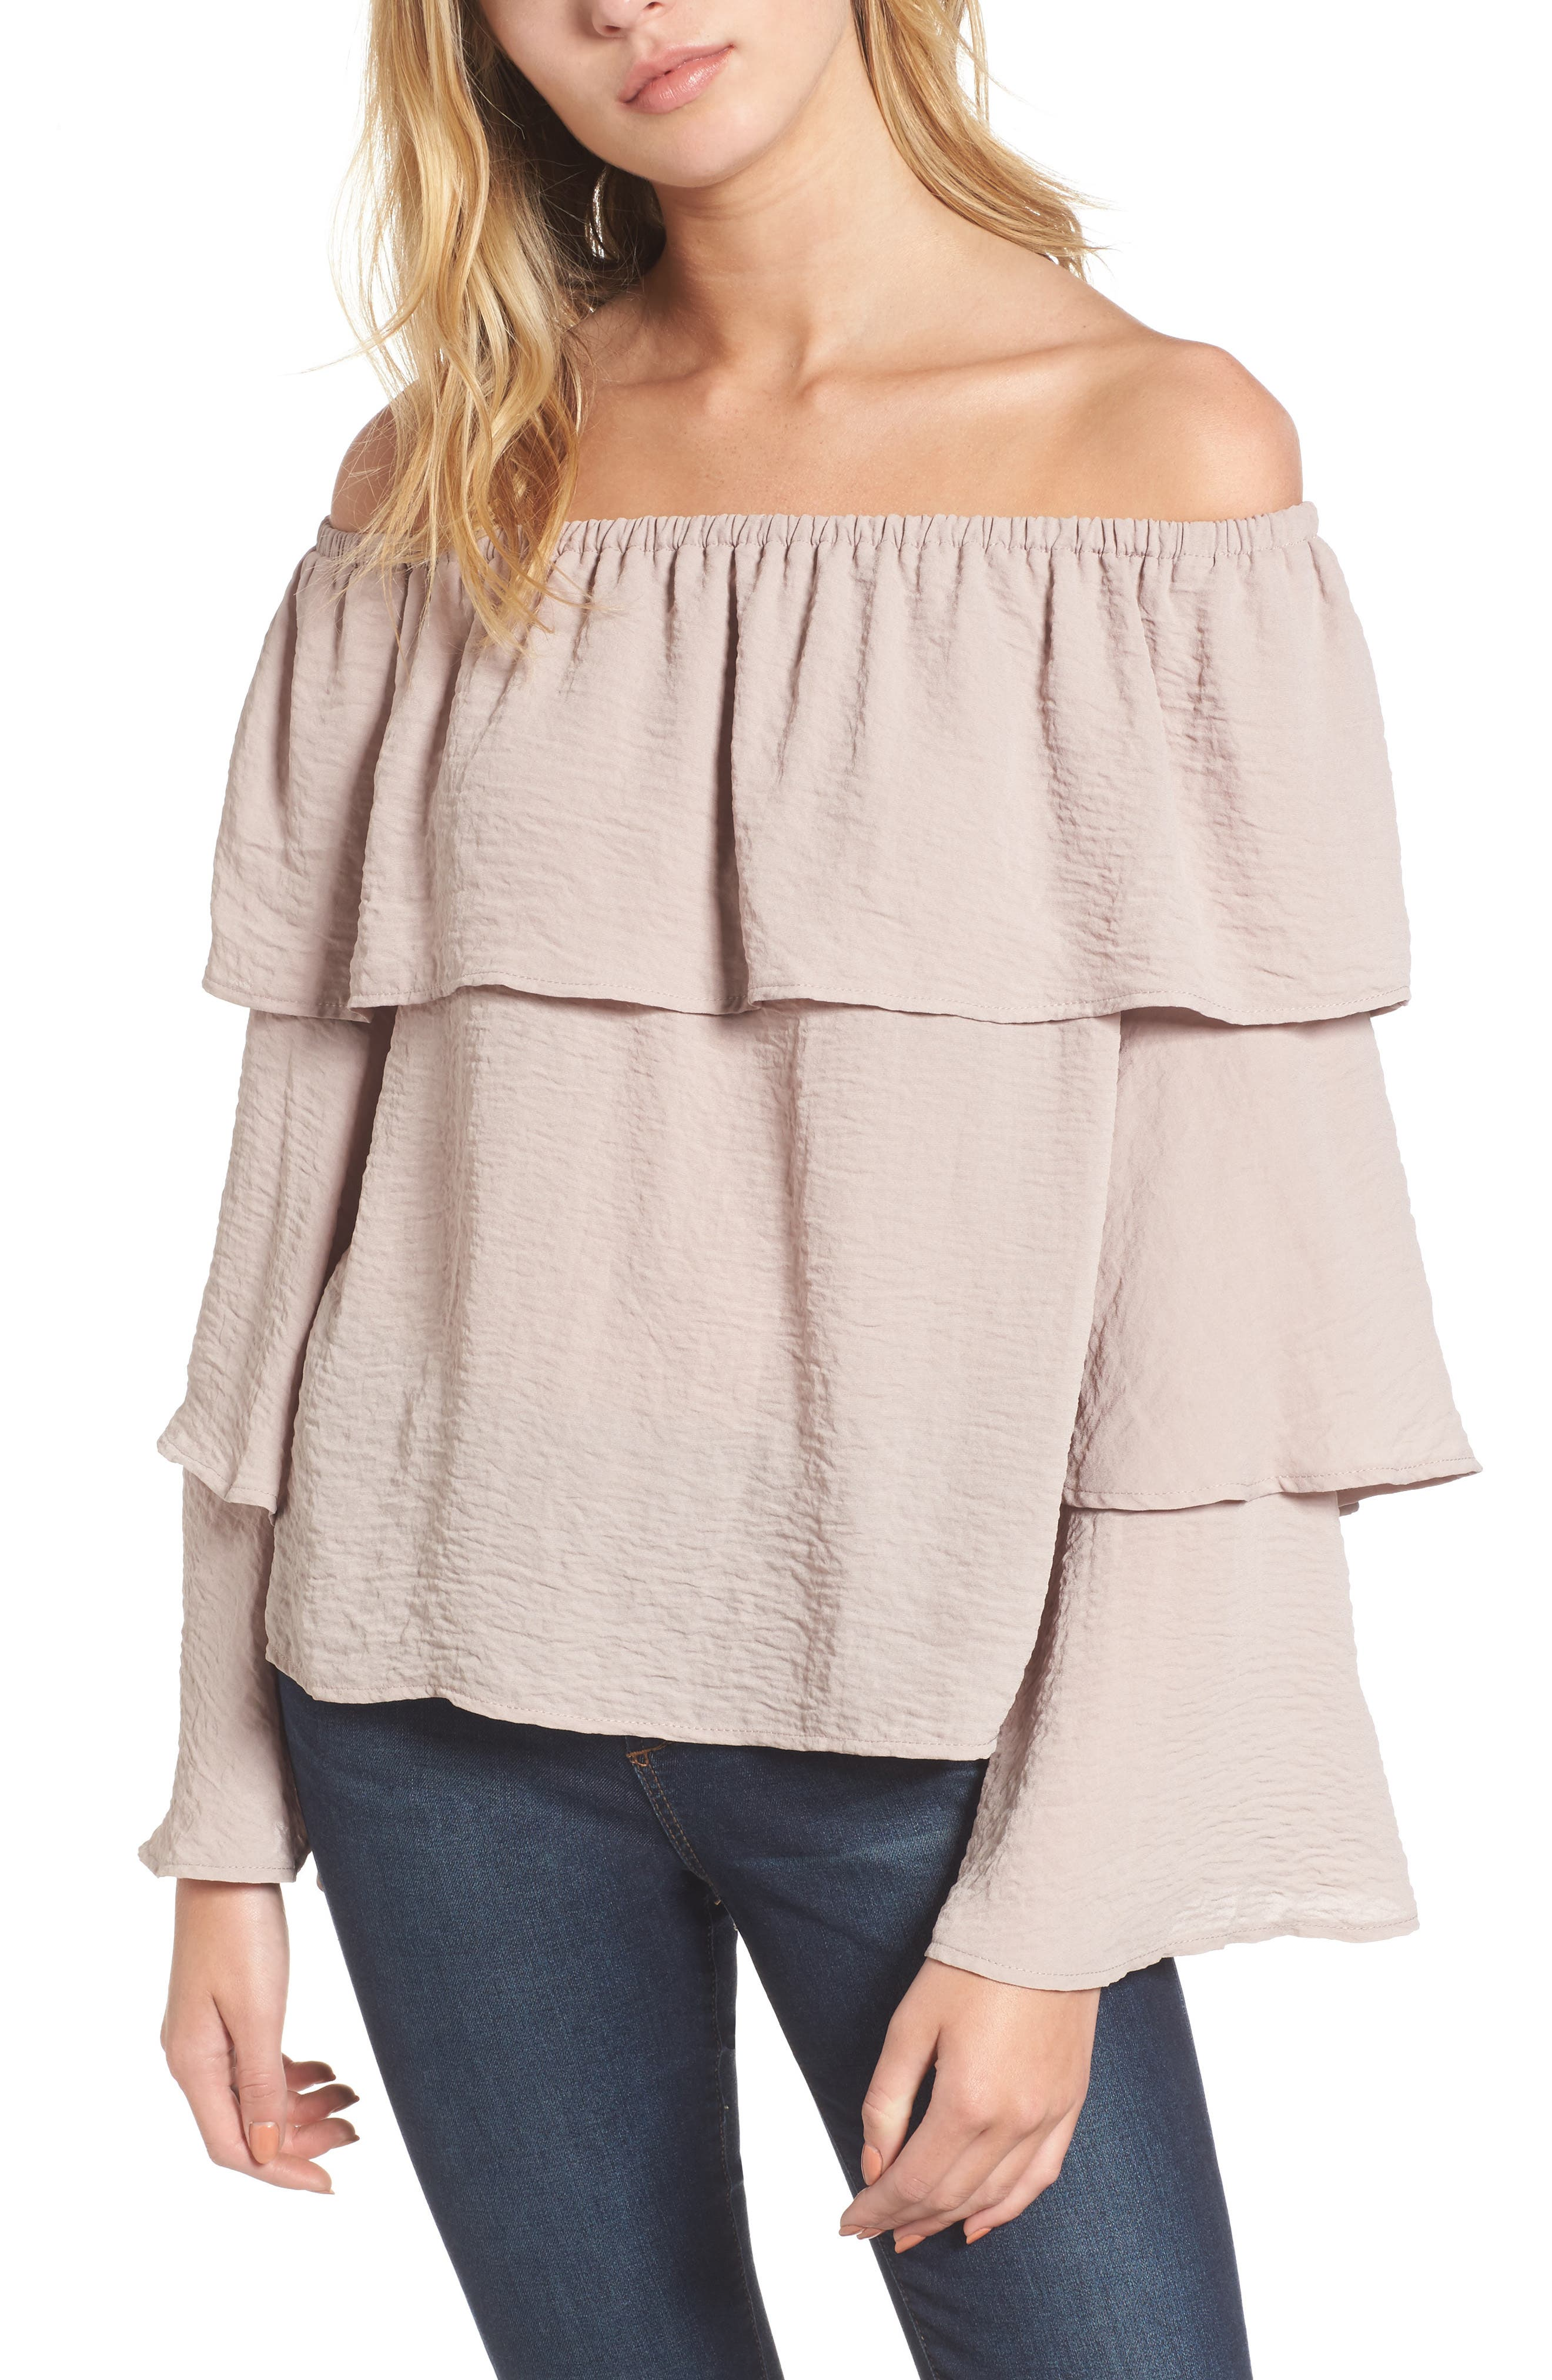 Alternate Image 1 Selected - Love, Fire Tiered Ruffle Sleeve Blouse